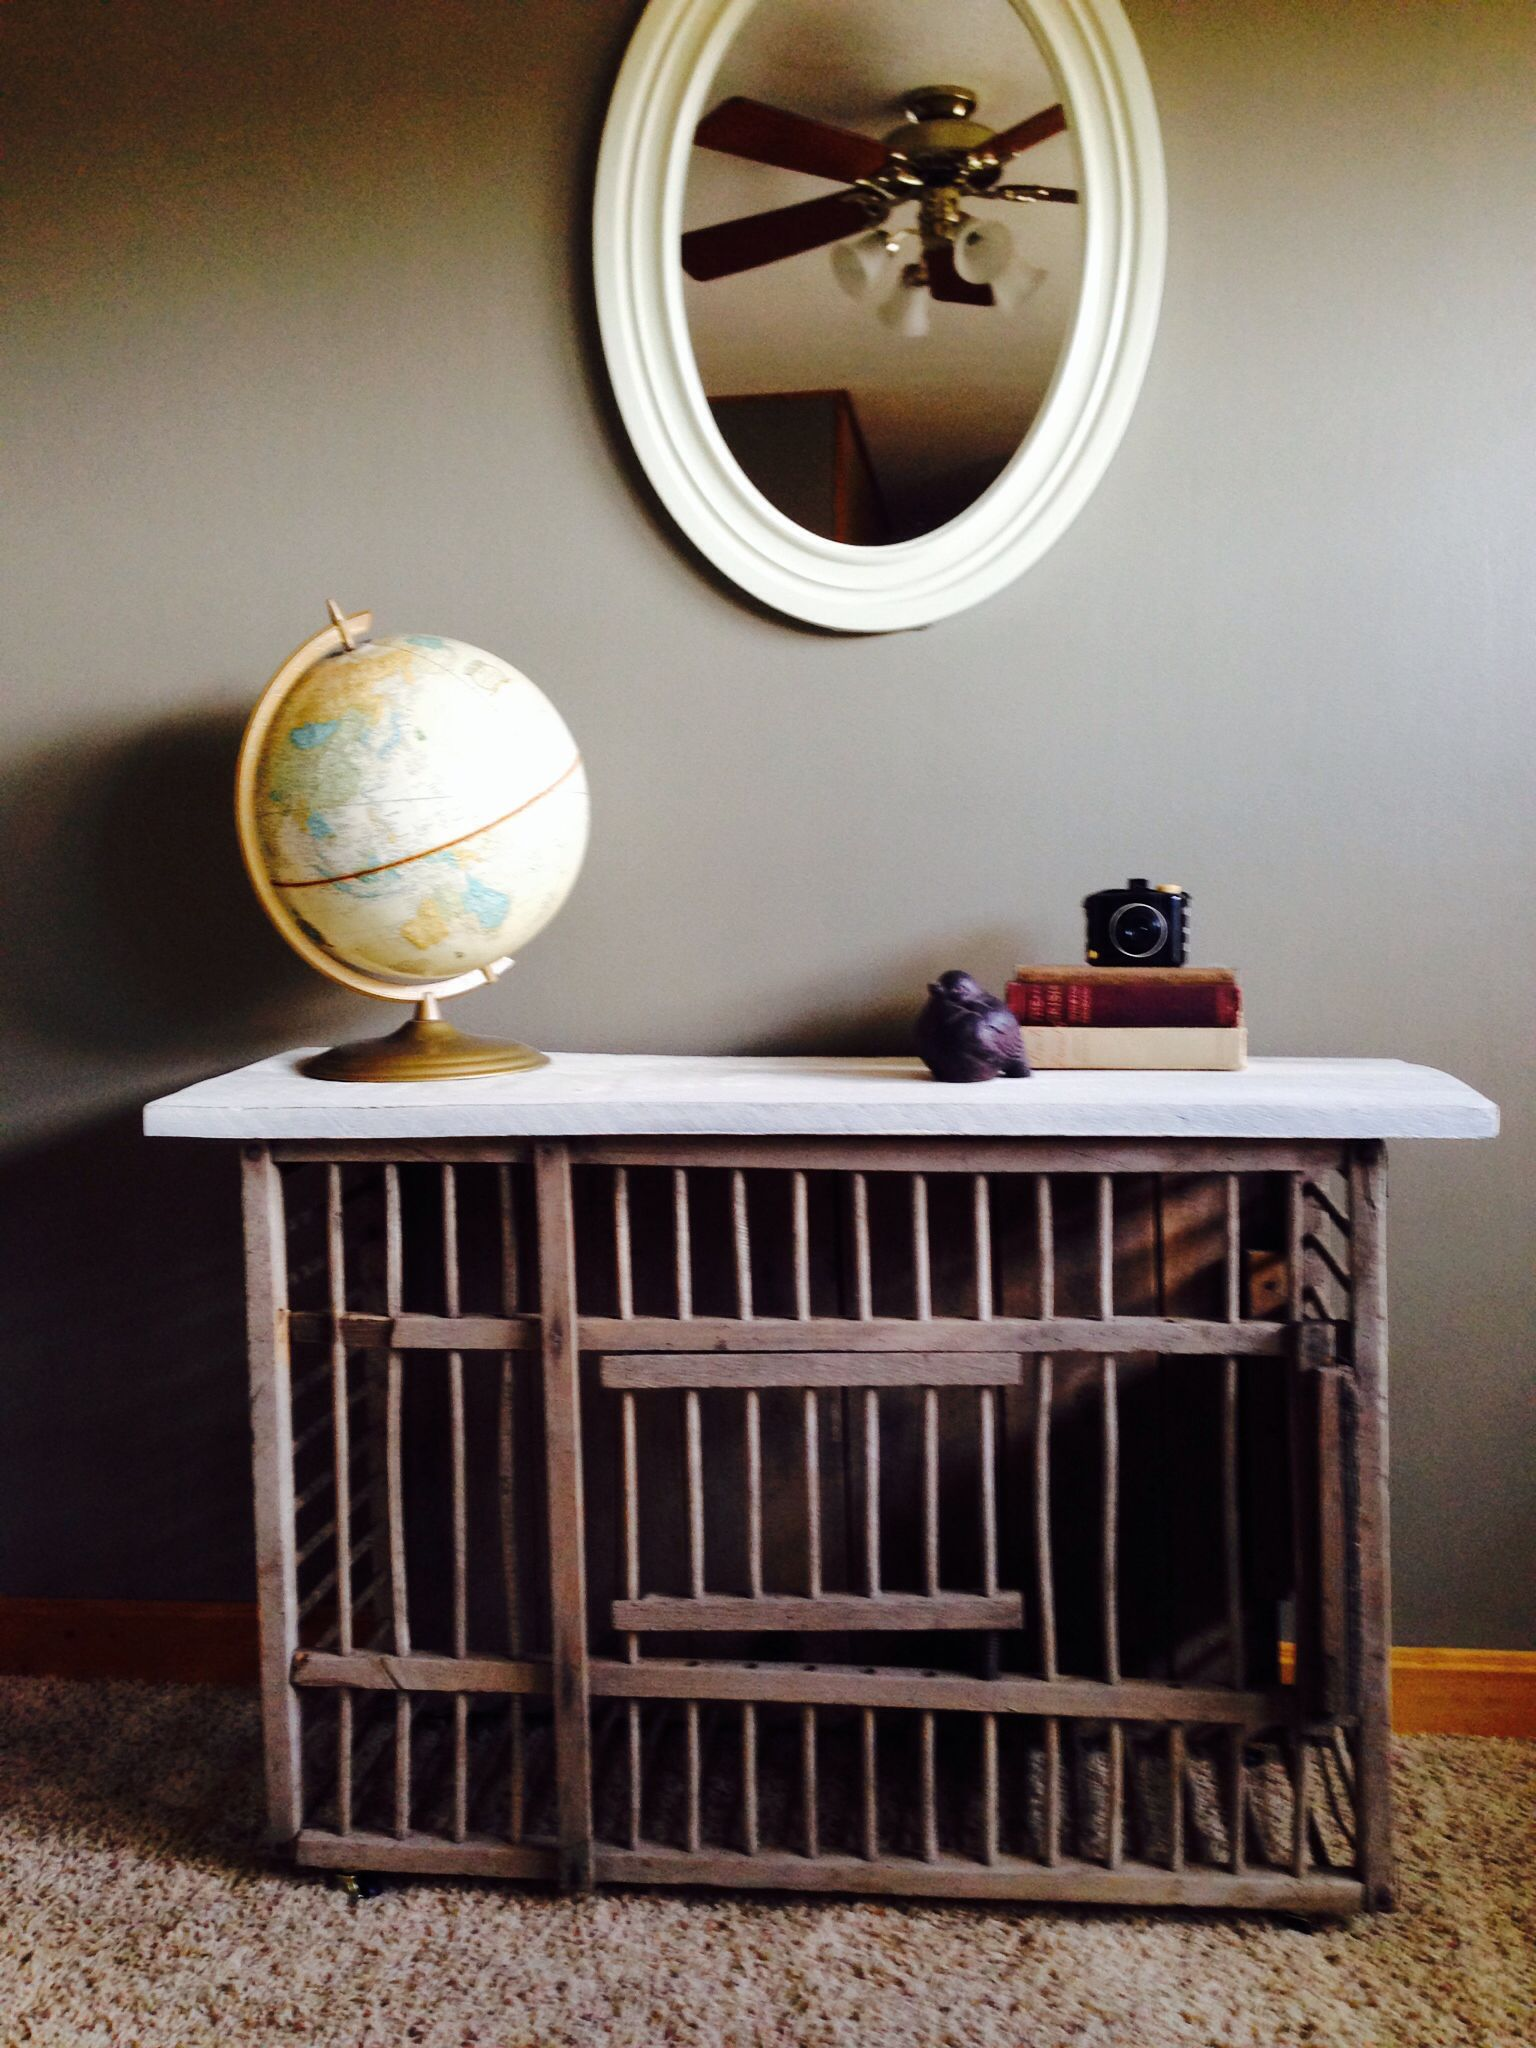 Antique chicken coop coffee table with vintage industrial wheels